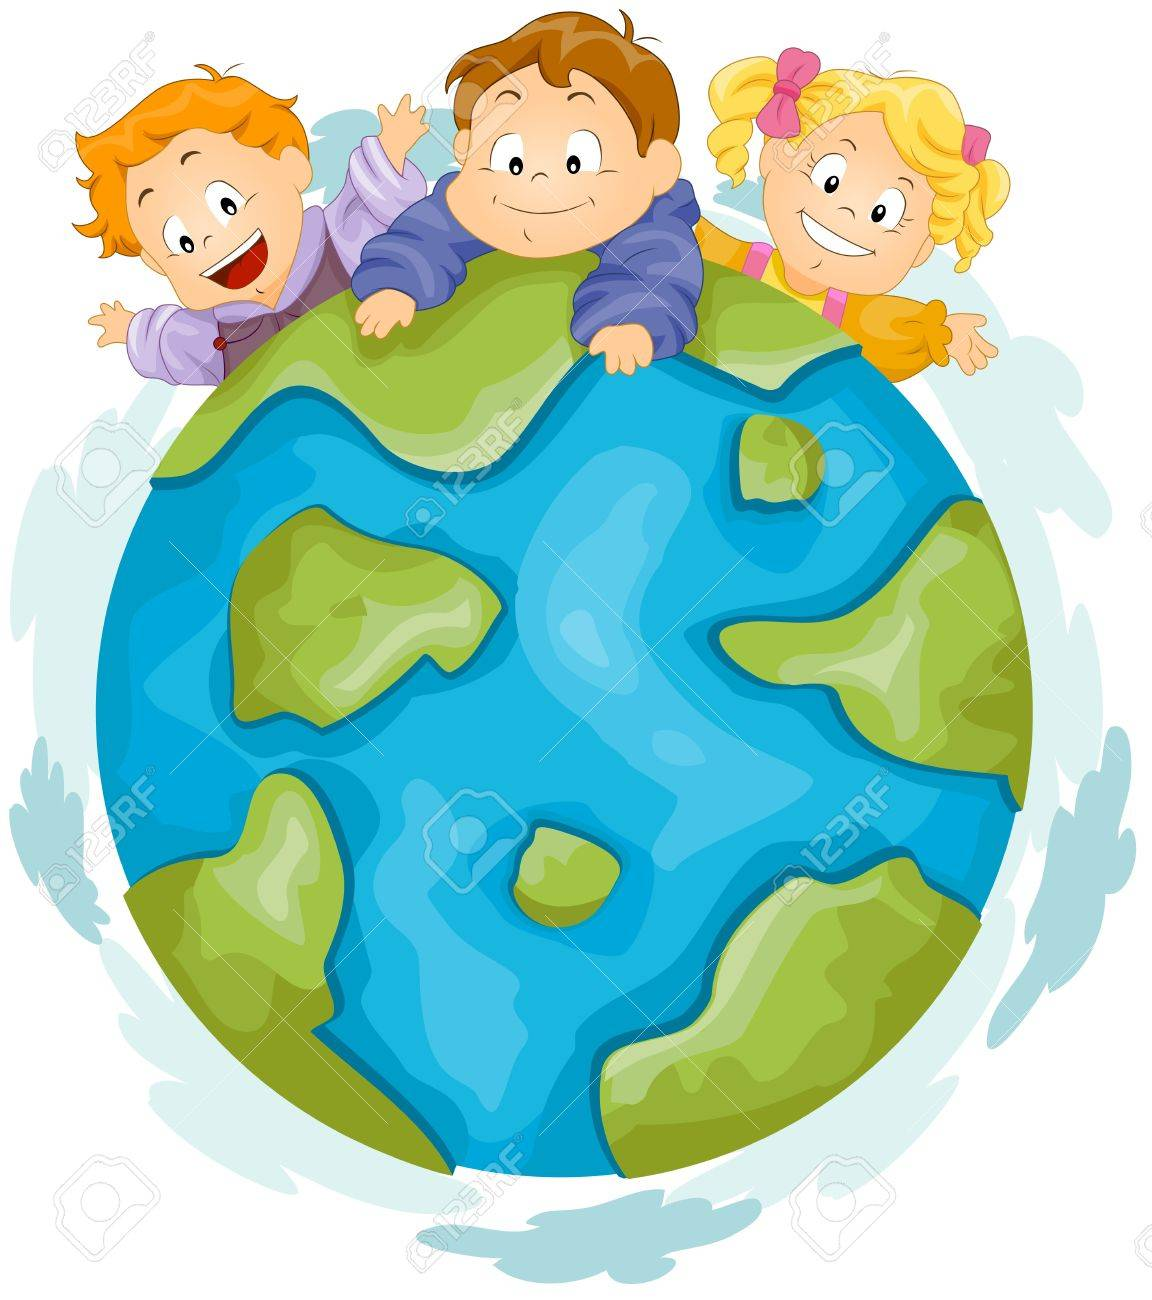 Illustration of Kids Playing on Top of a Huge Globe Stock Photo - 8614169